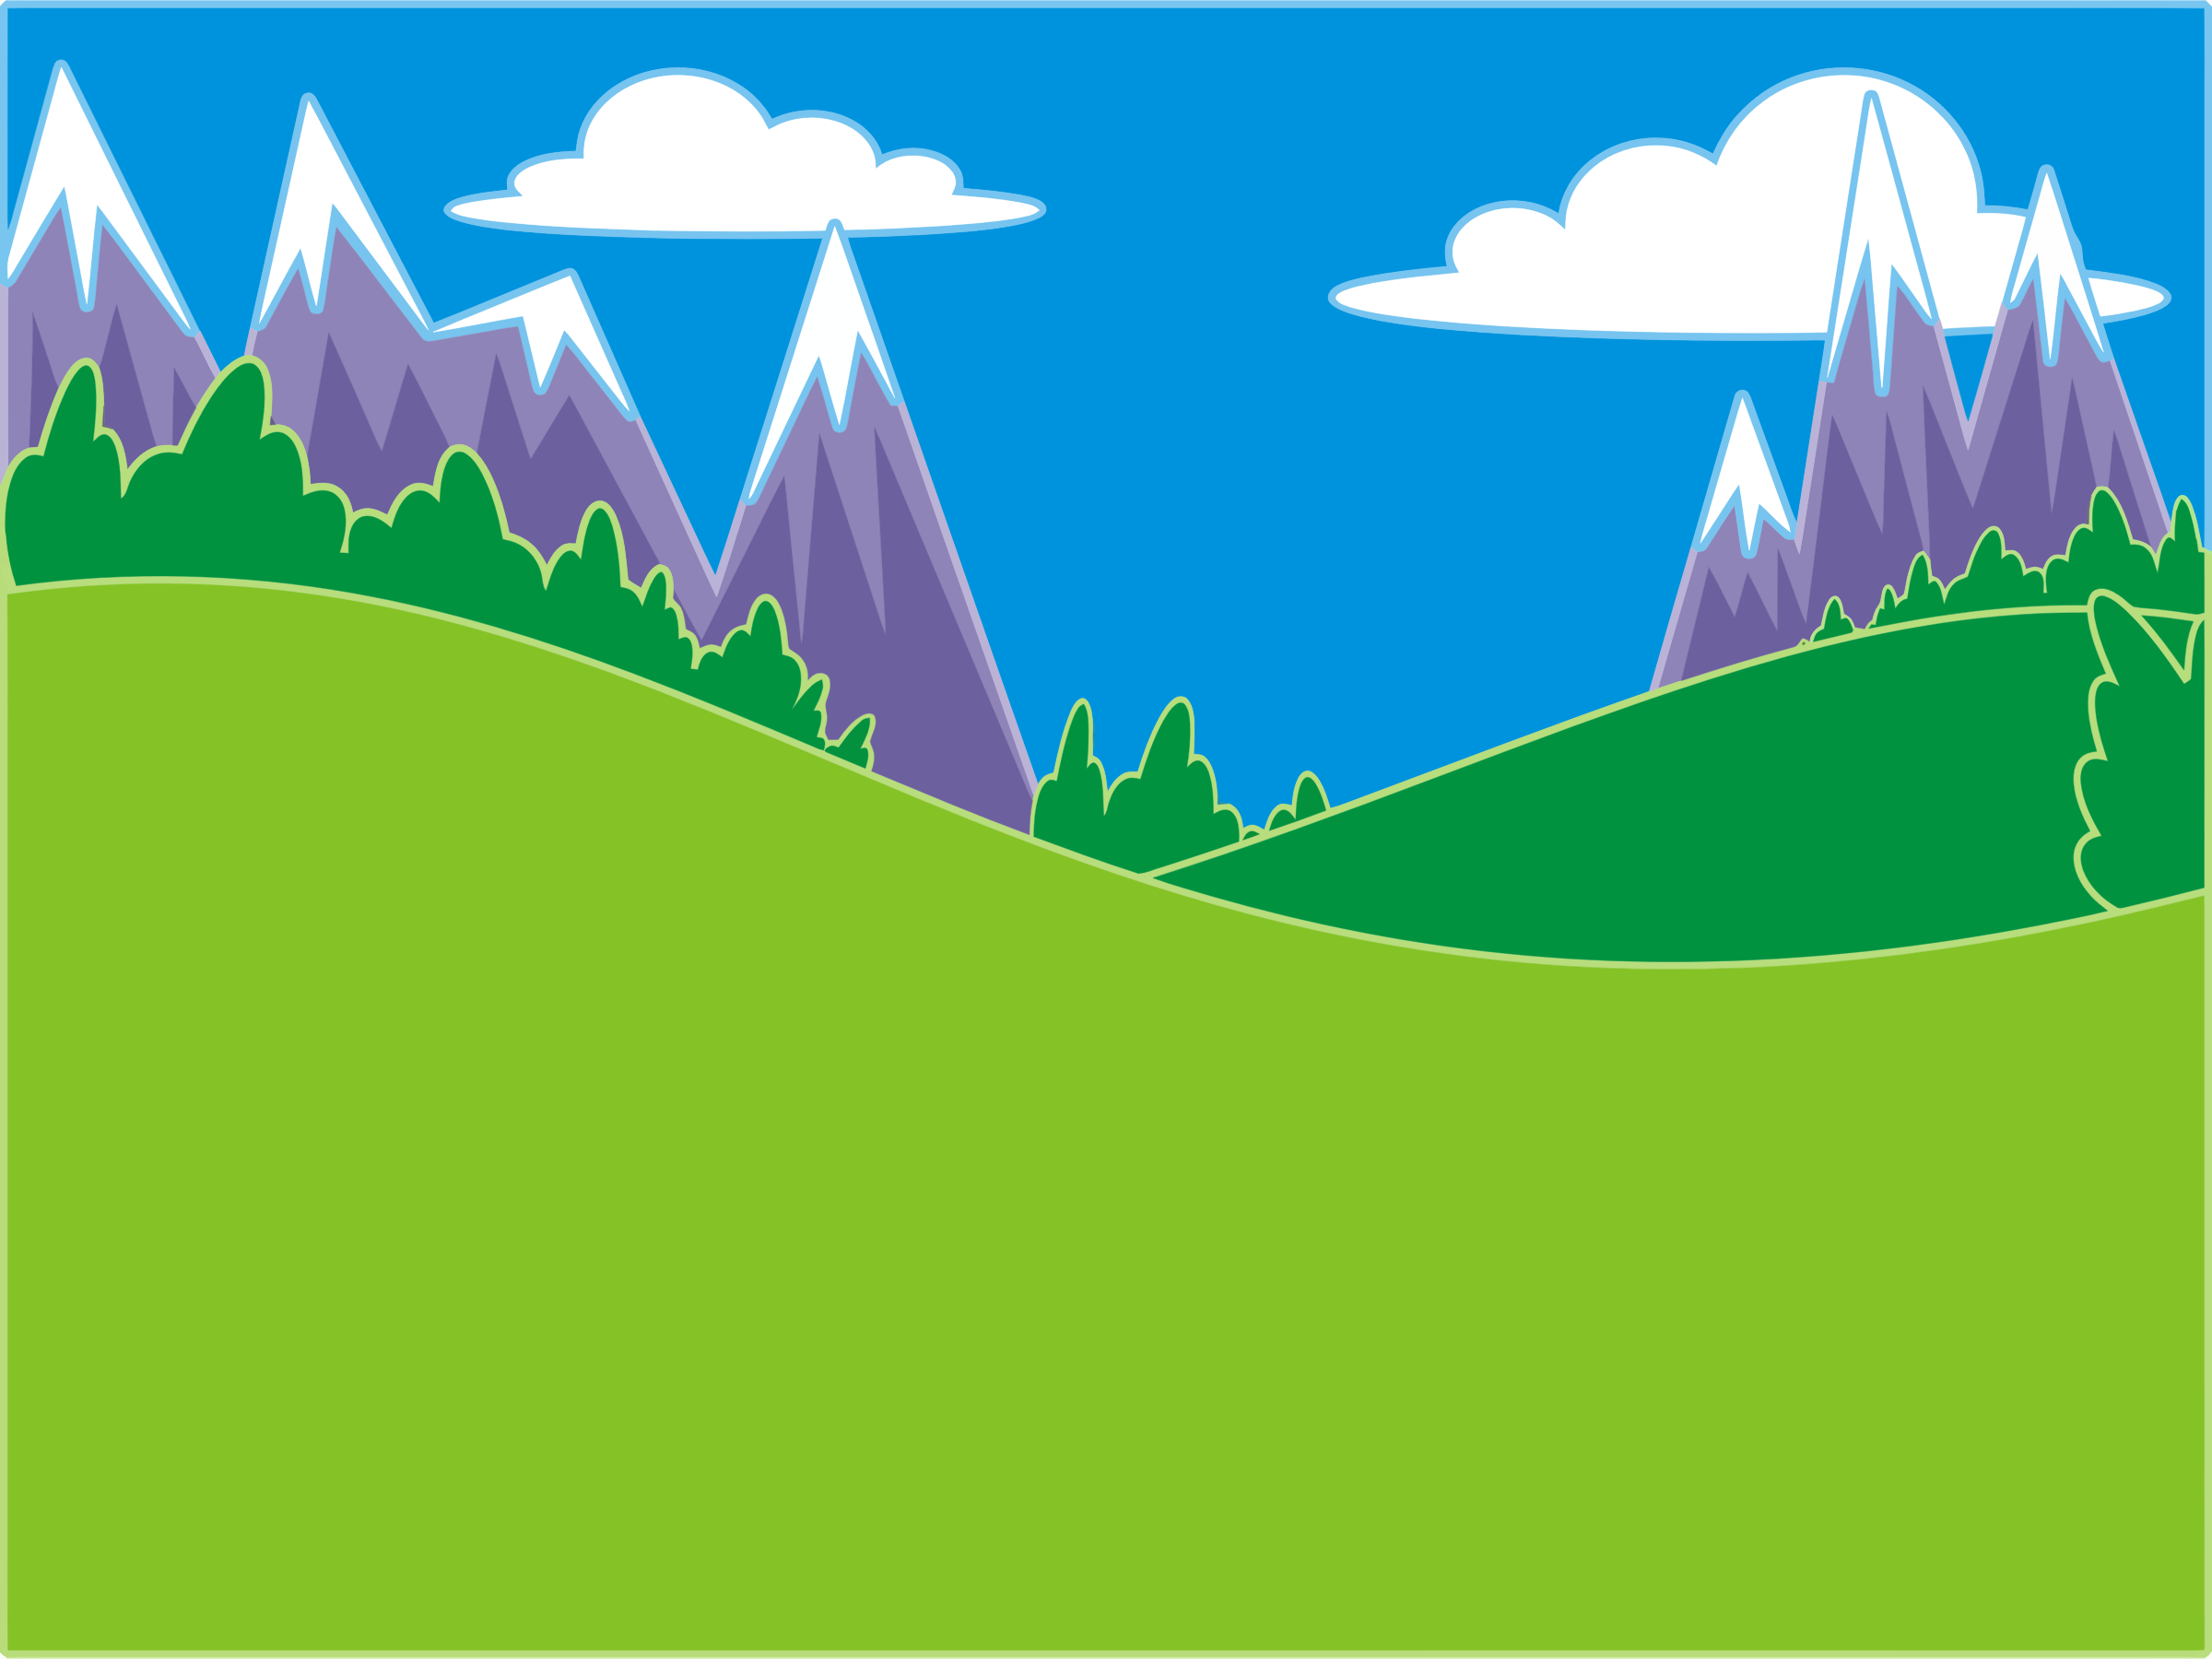 Cartoon mountains clipart.